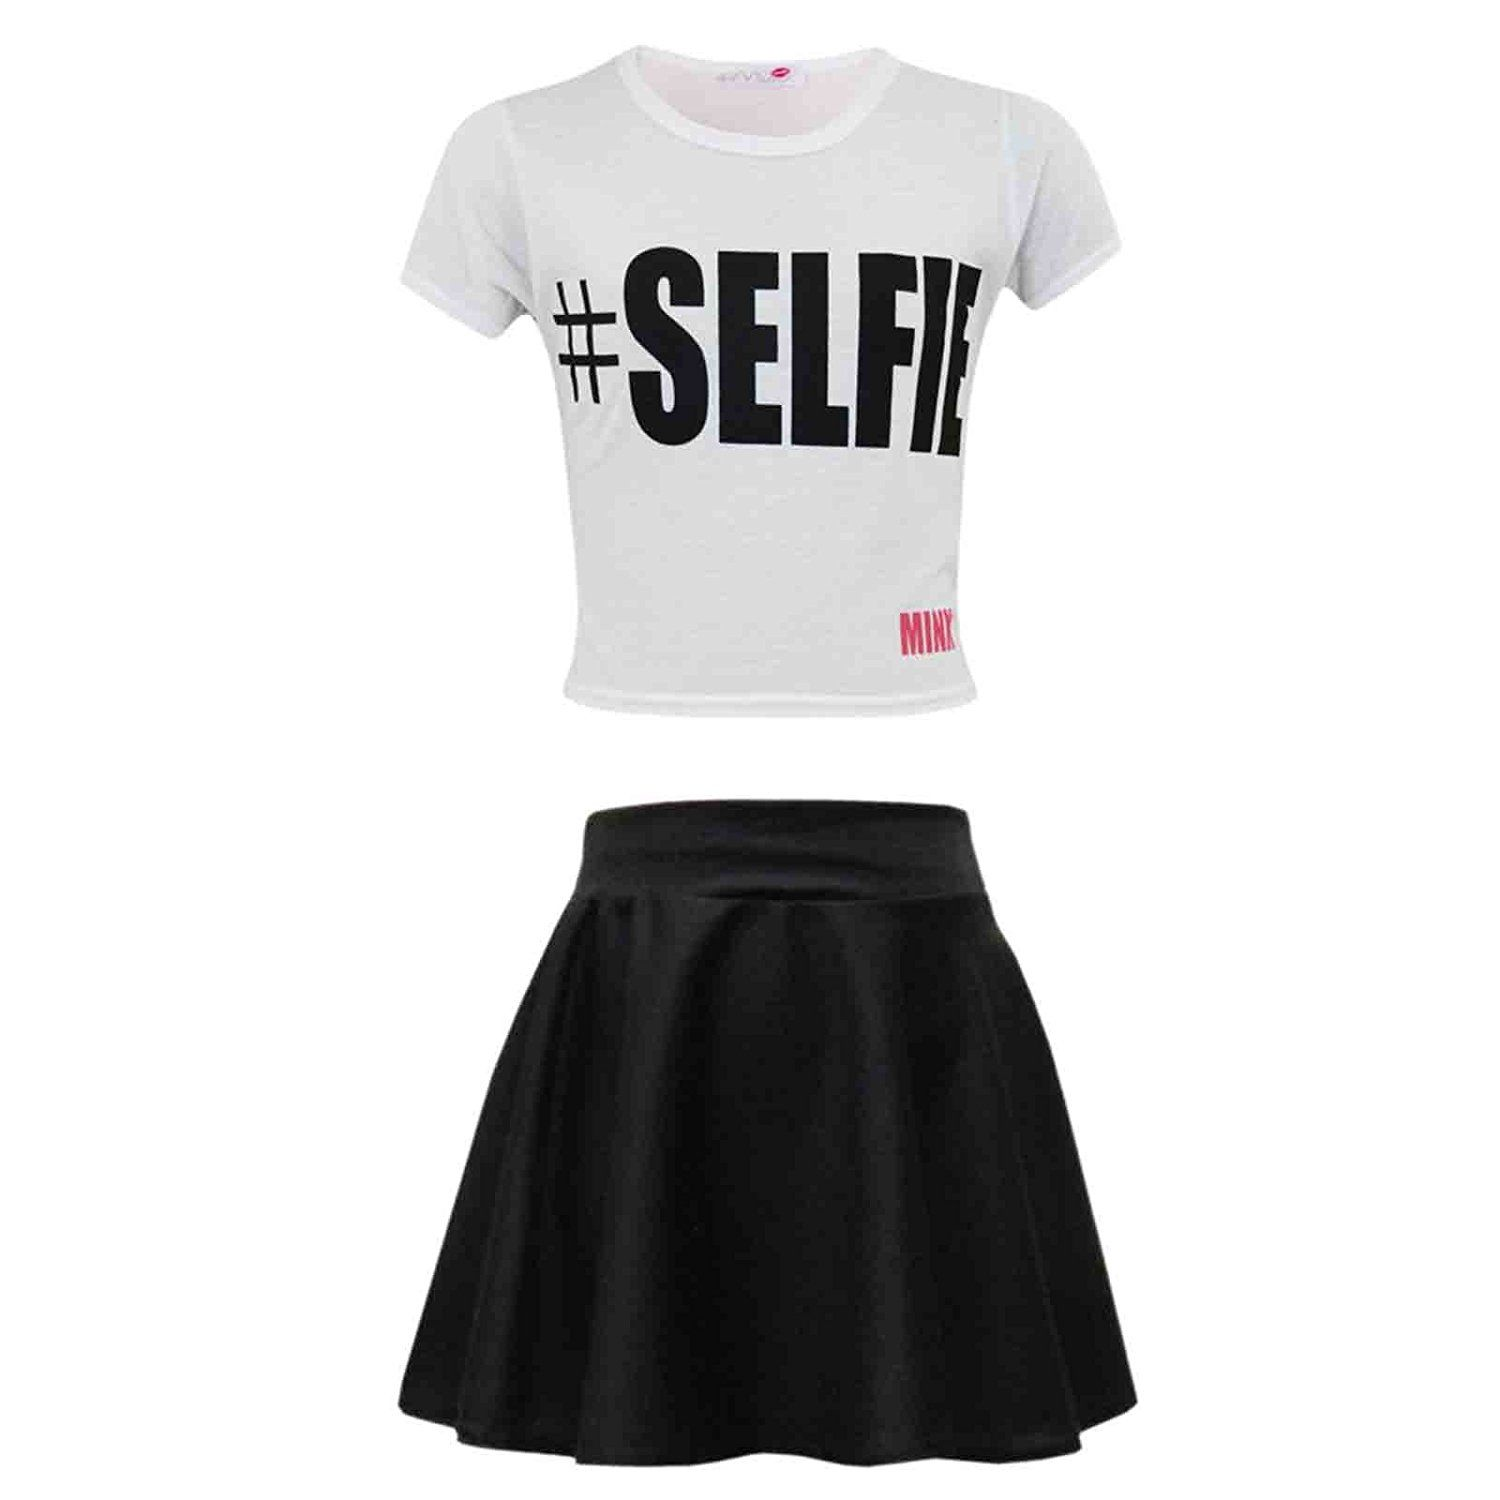 Image Result For Fashion Clothes For Kids 12 Year Old Girls With